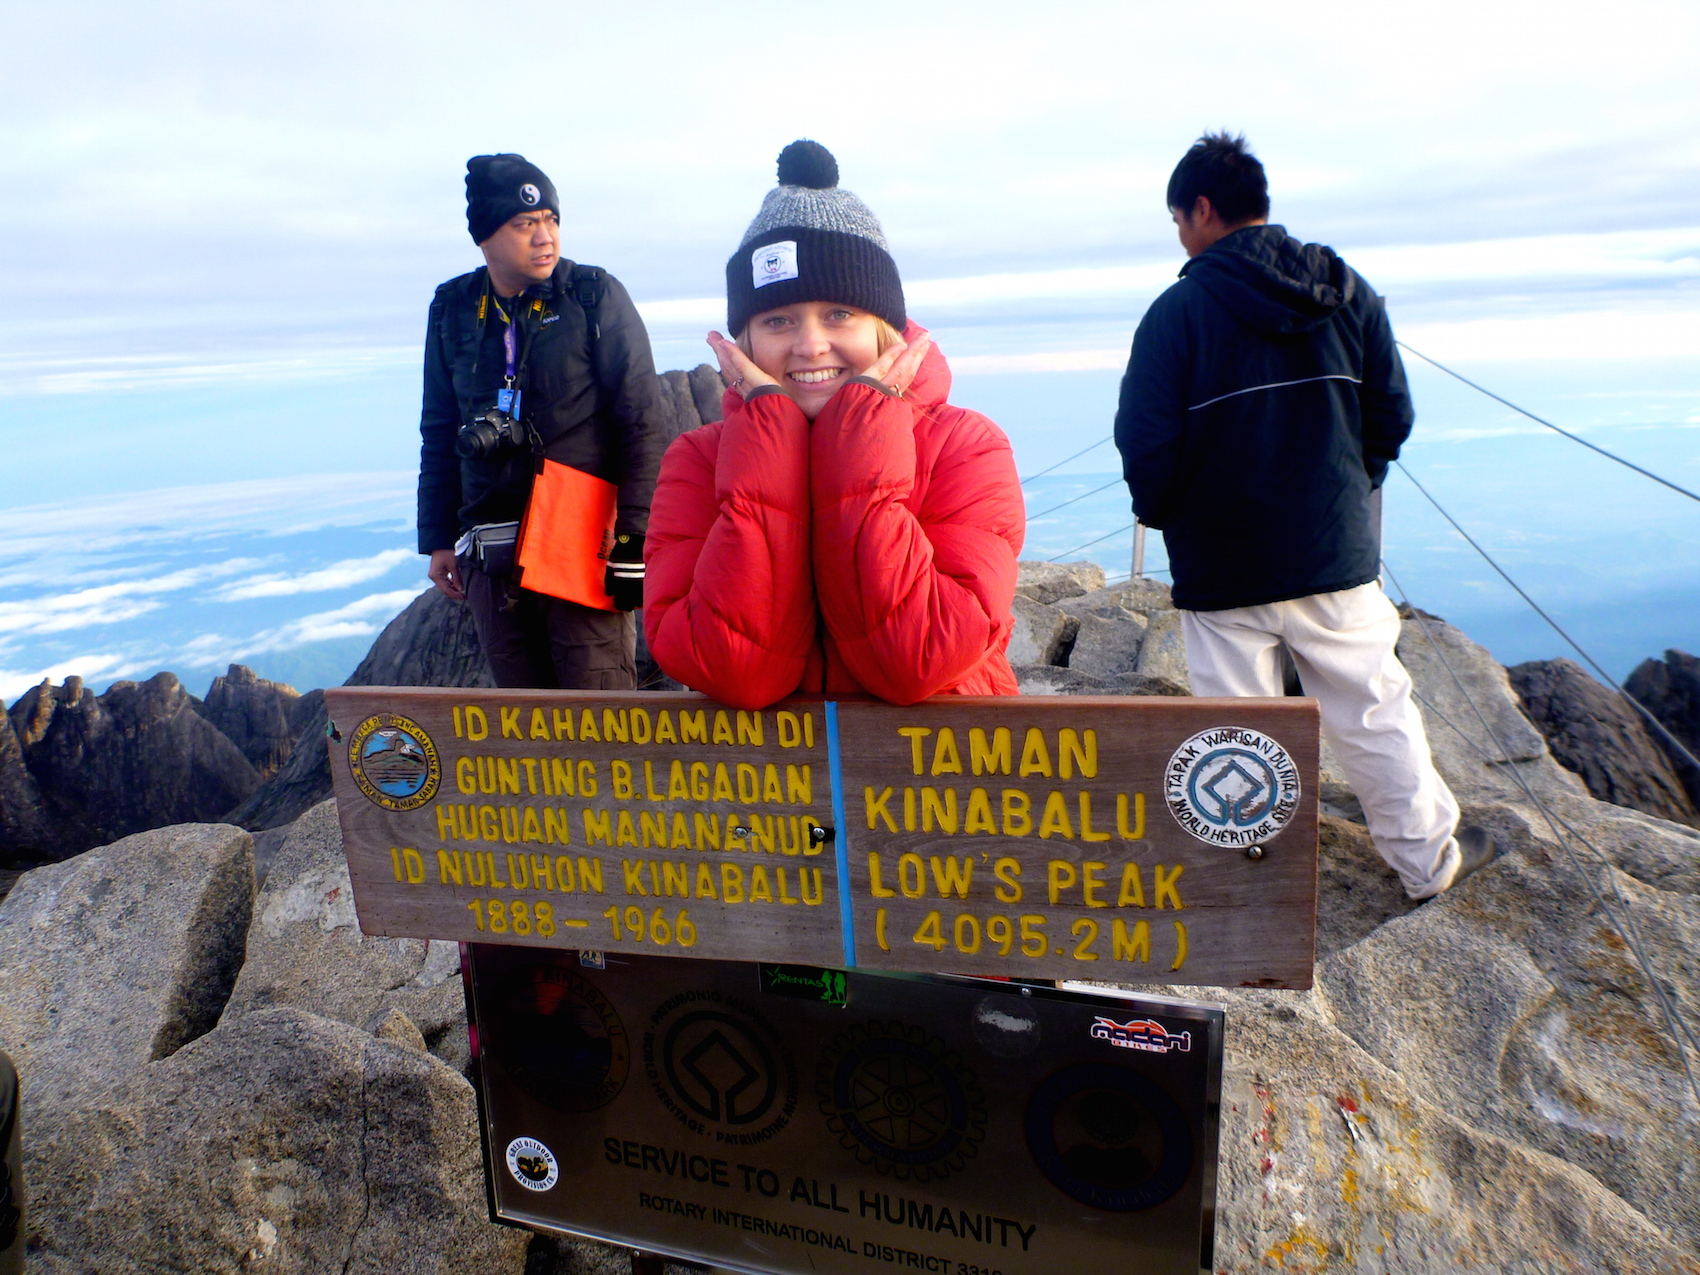 4095m-above-sea-level